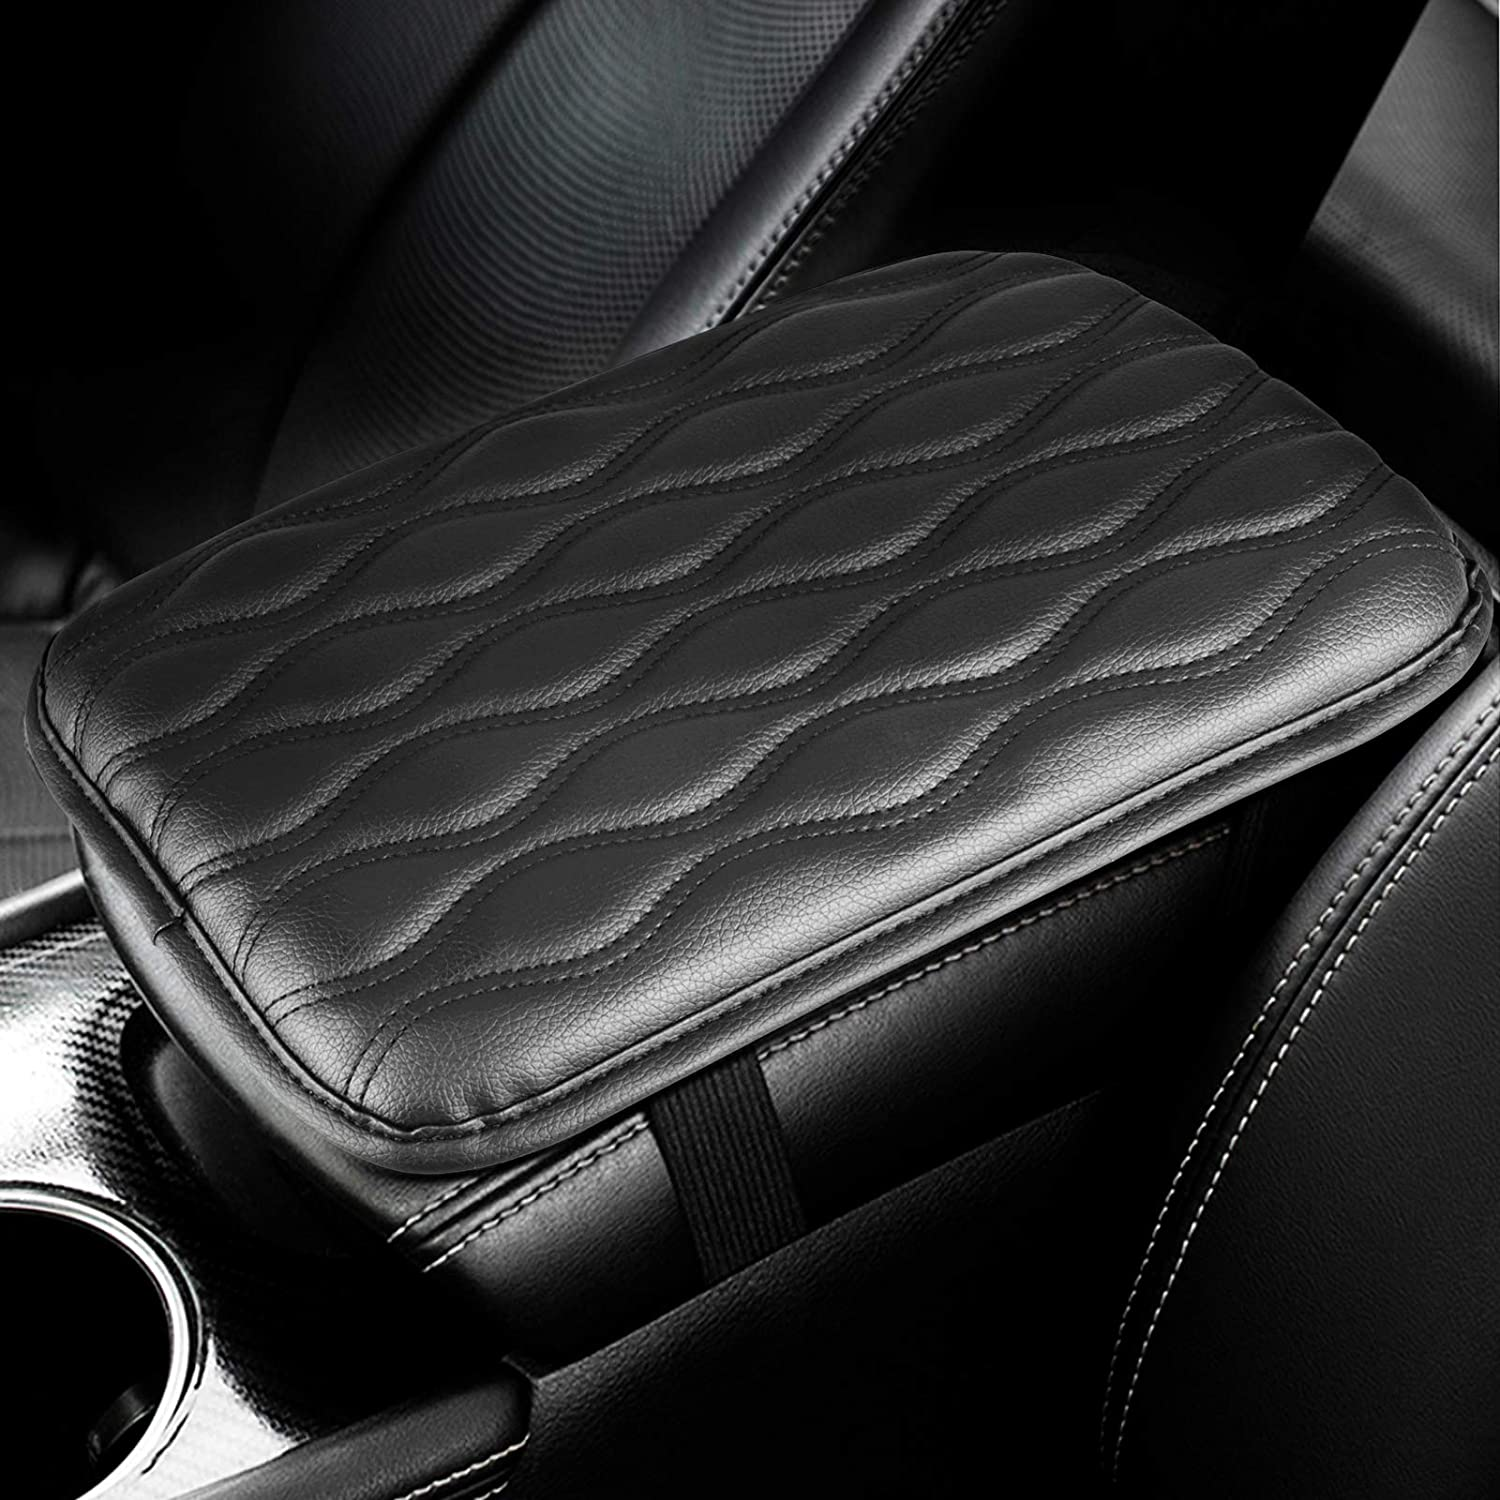 Black Anti-wear Leather Car Center Console Cover Cushion Armrests Pads Universal